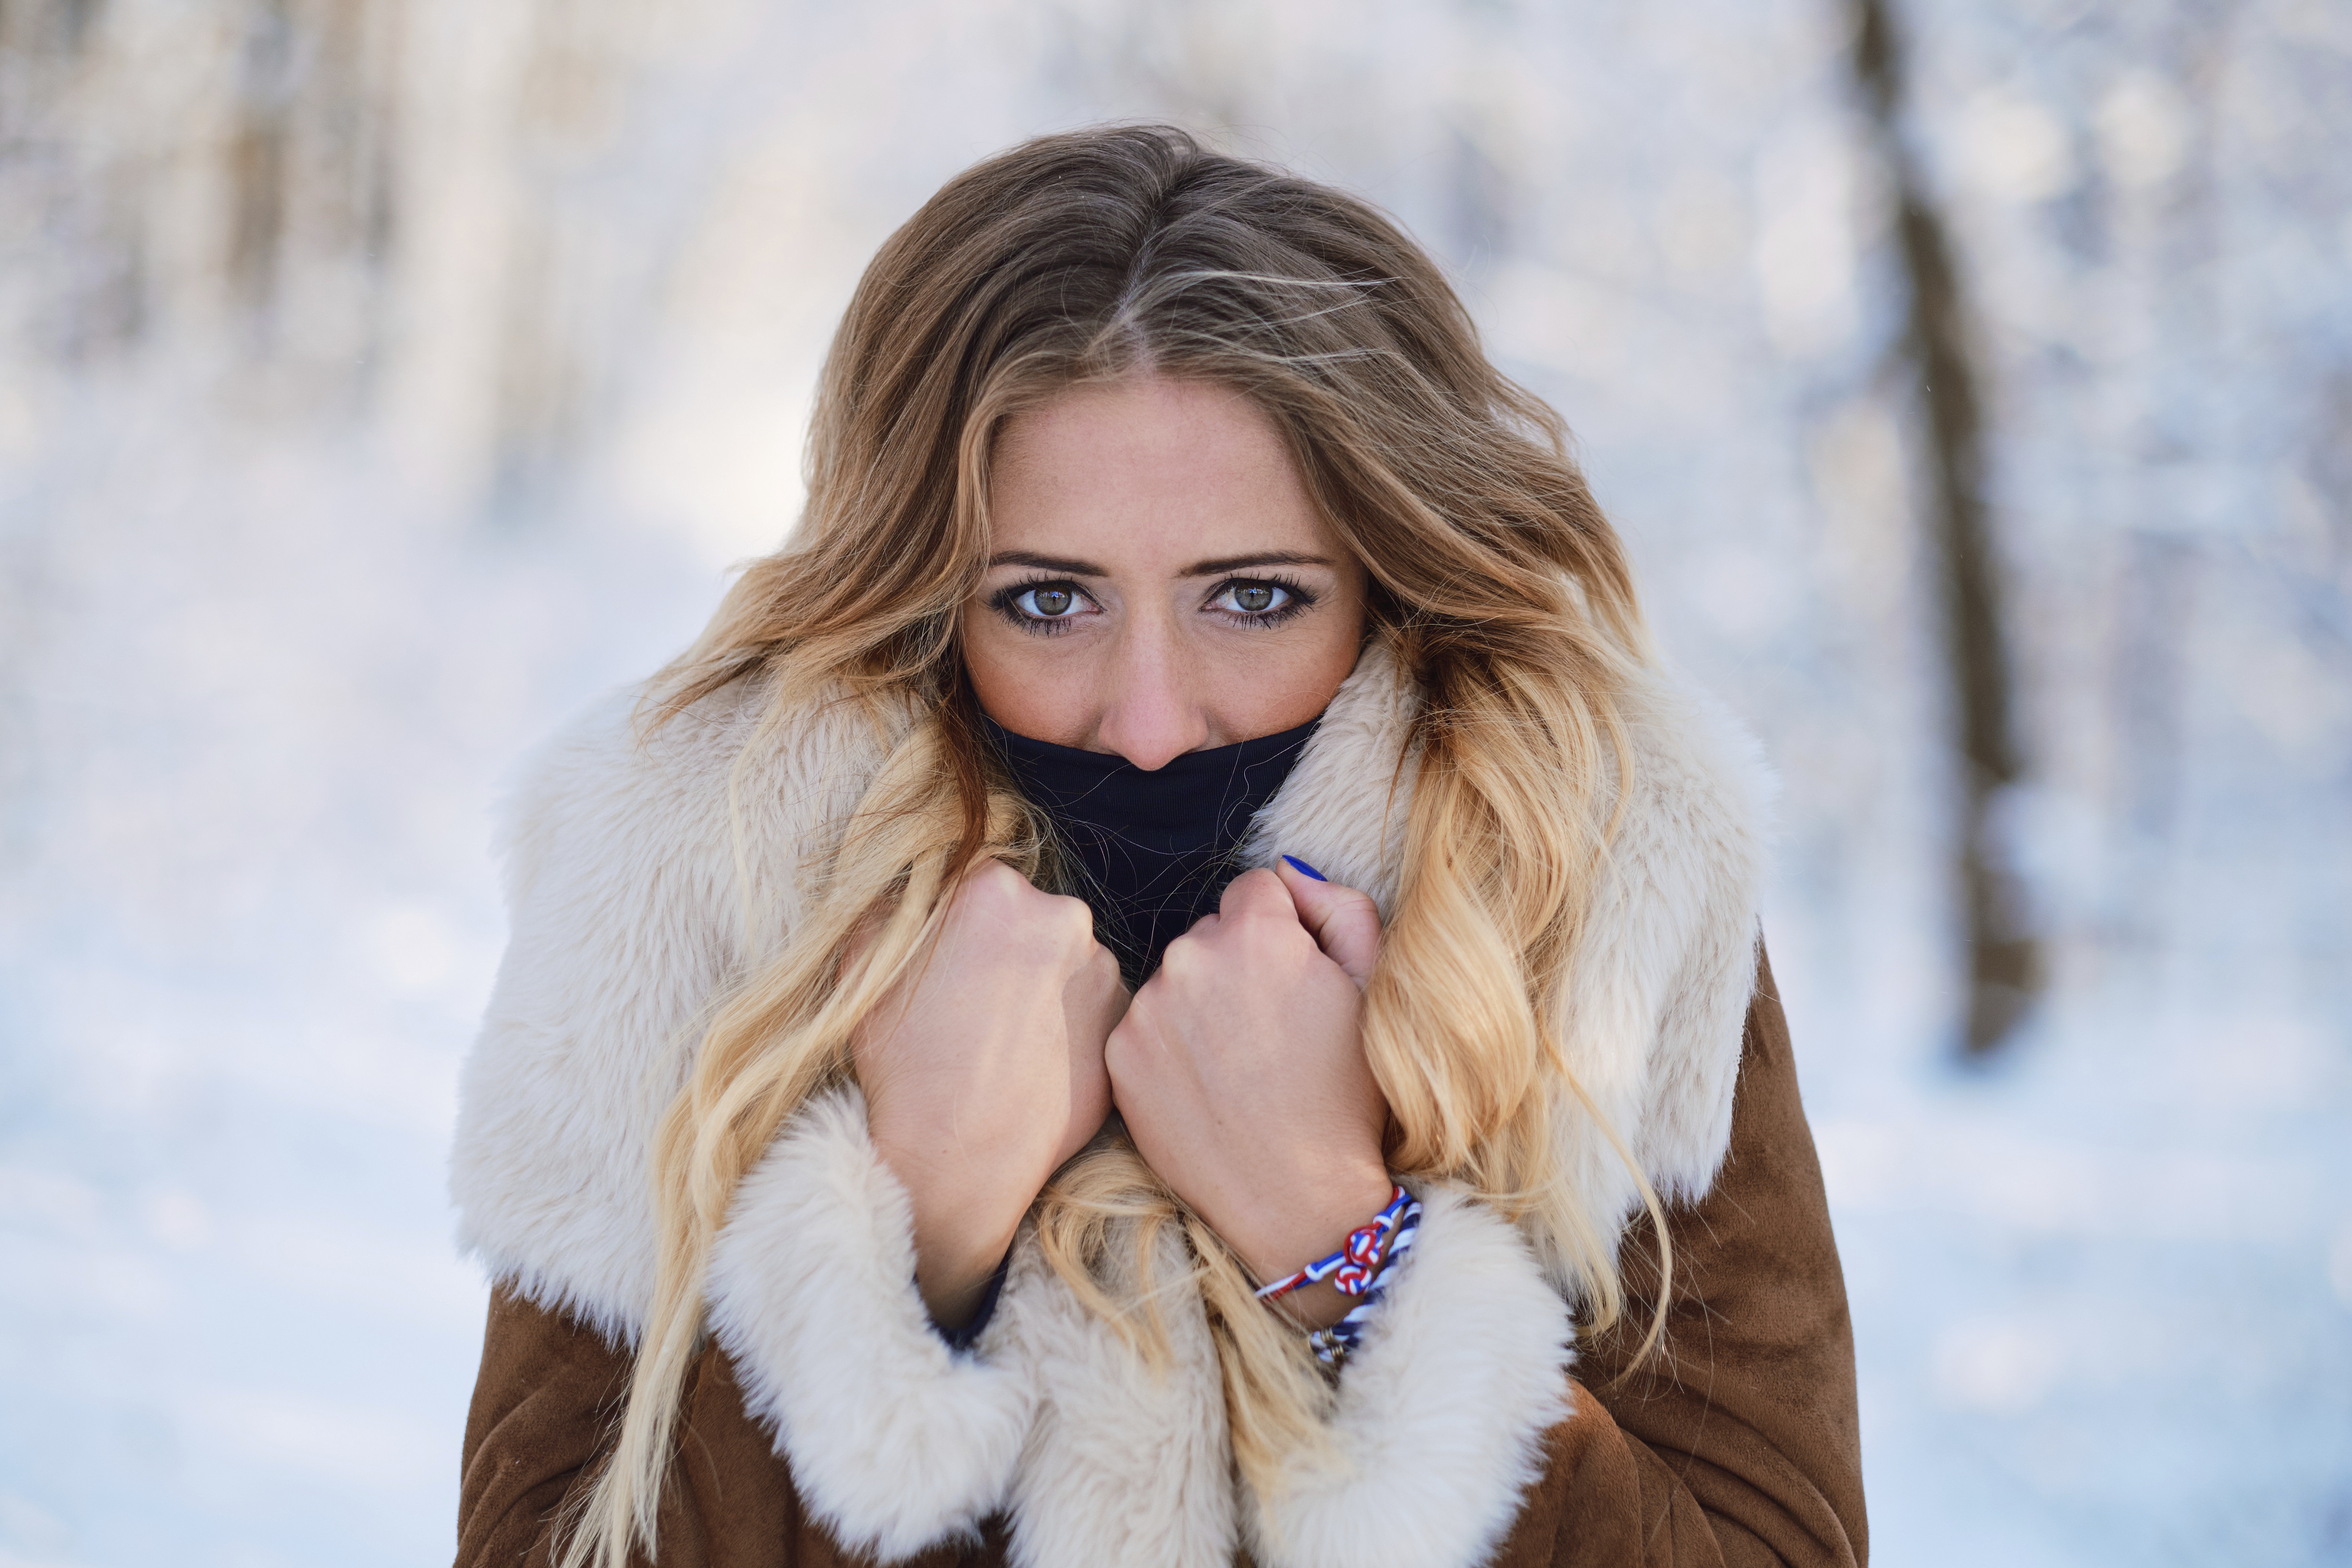 Achieve Beautifully Glowing Skin in Winter With These 4 Products